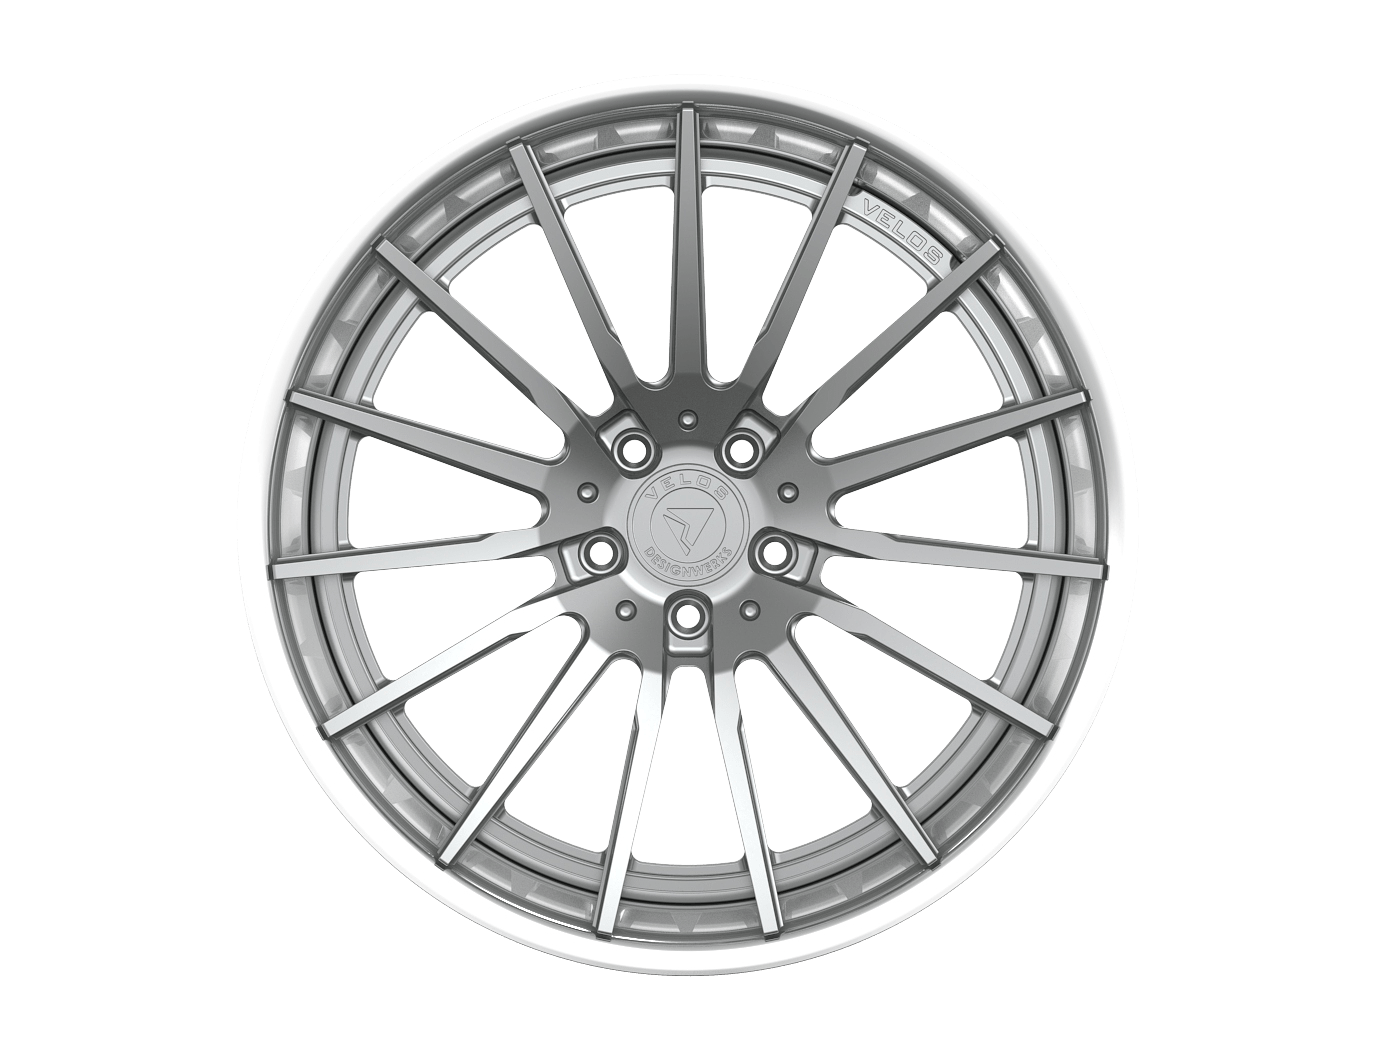 S15 Signature Series Forged Wheels